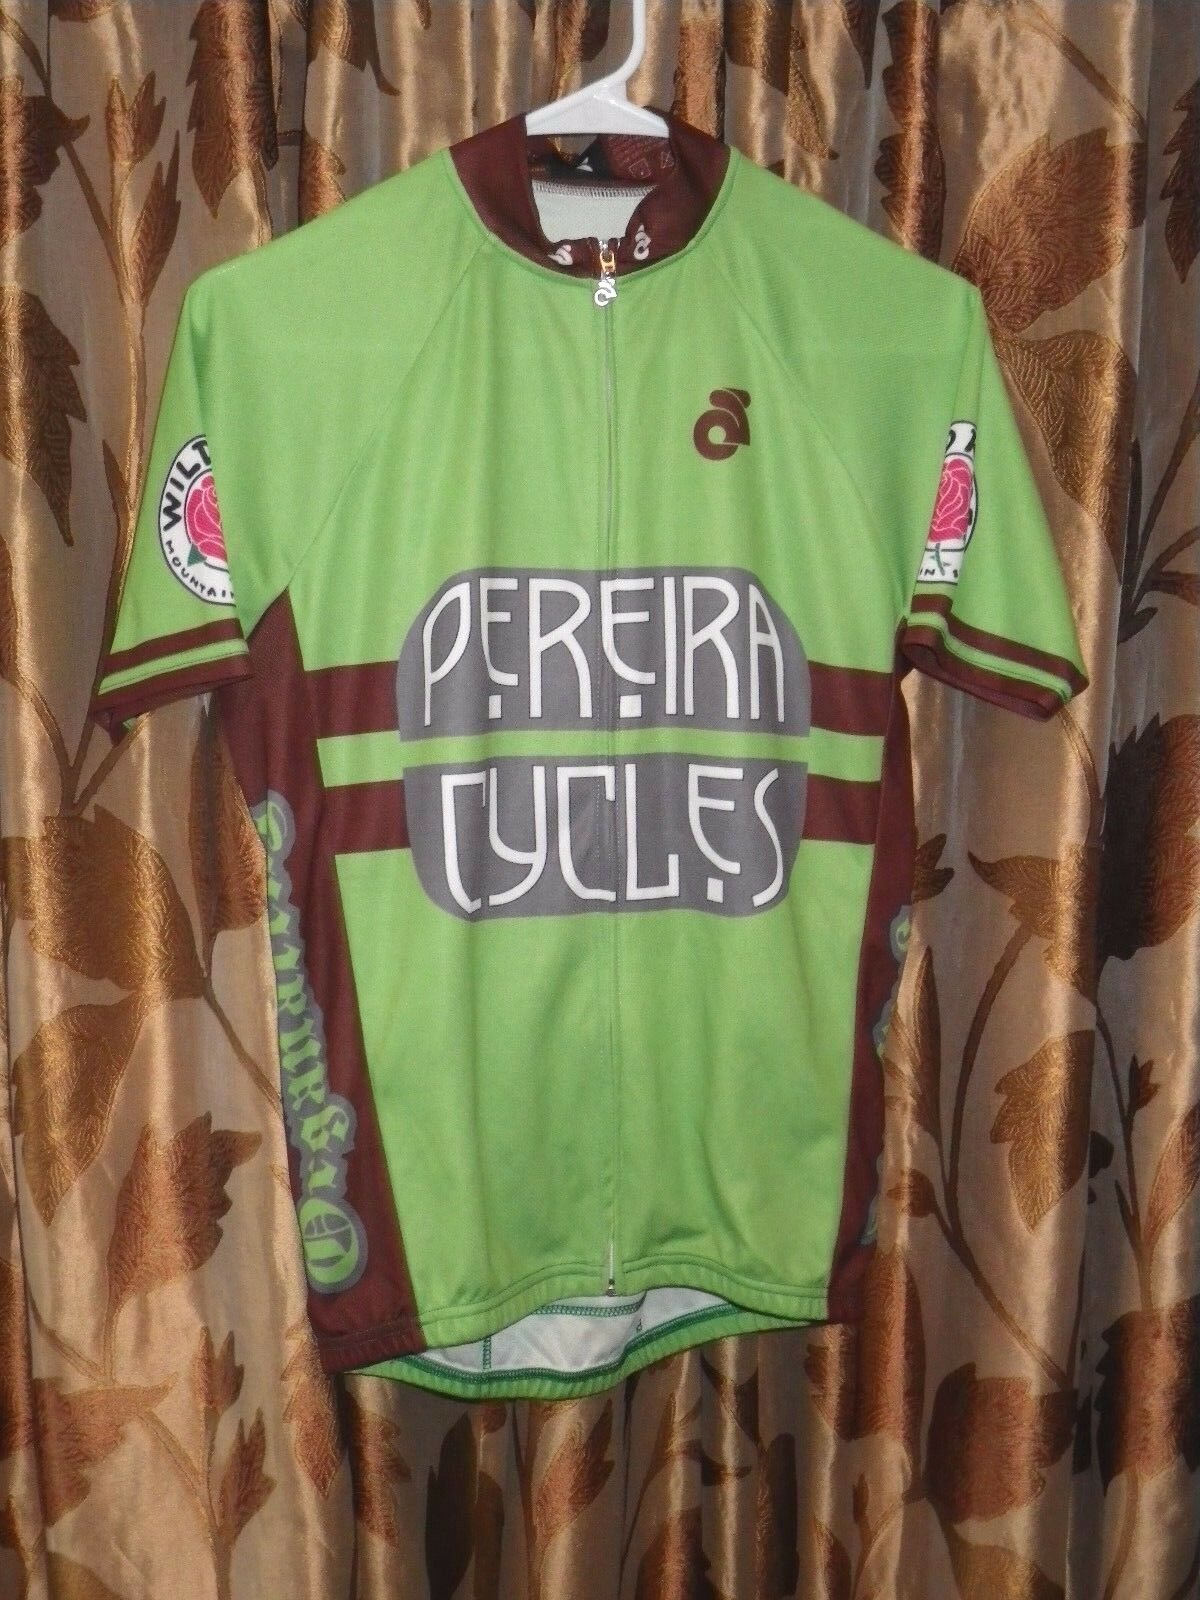 Champion Systems PEREIRA CYCLES Cycling Jersey  Men's Small  Portland OR Maker